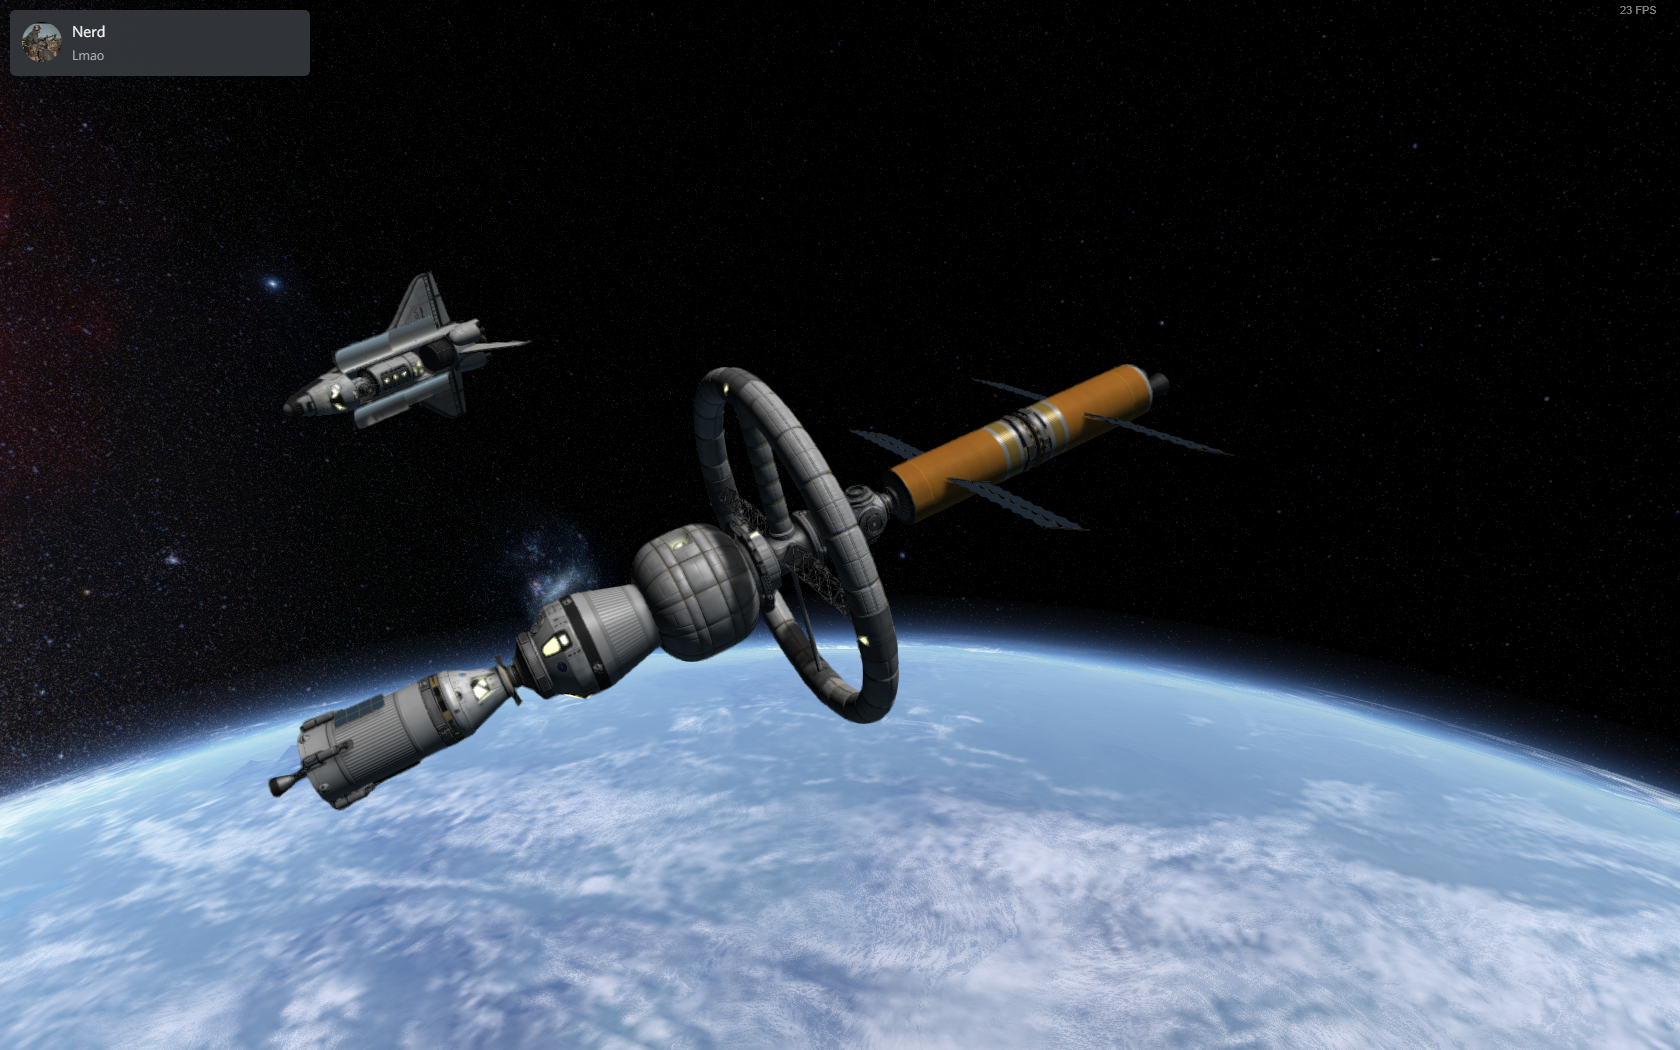 Challenger up for inspection and prep for Duna mission